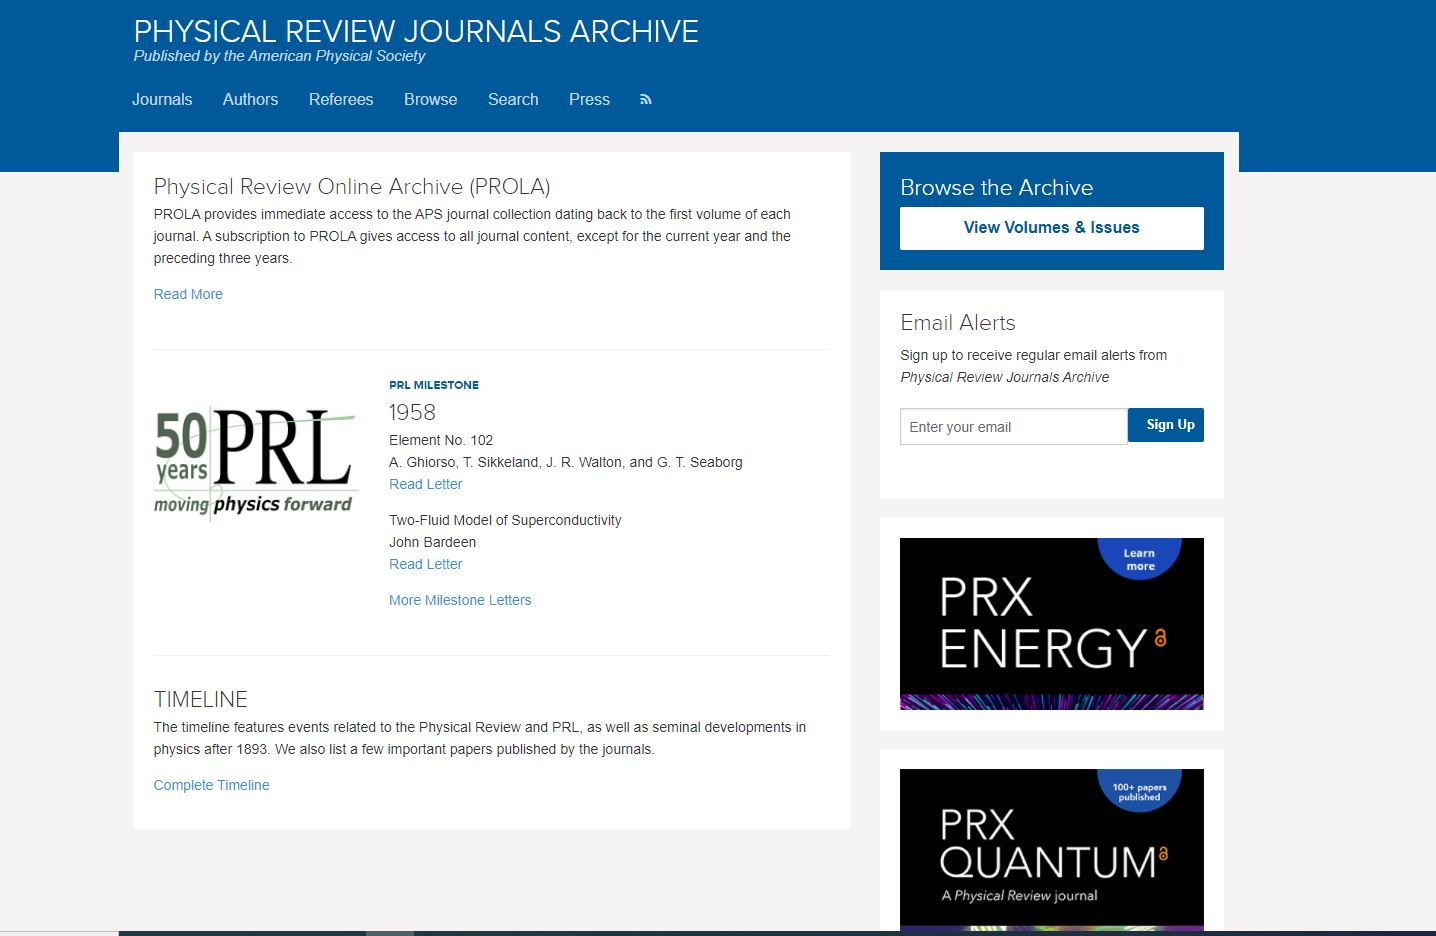 The Physical Review Online Archive (PROLA) homepage.